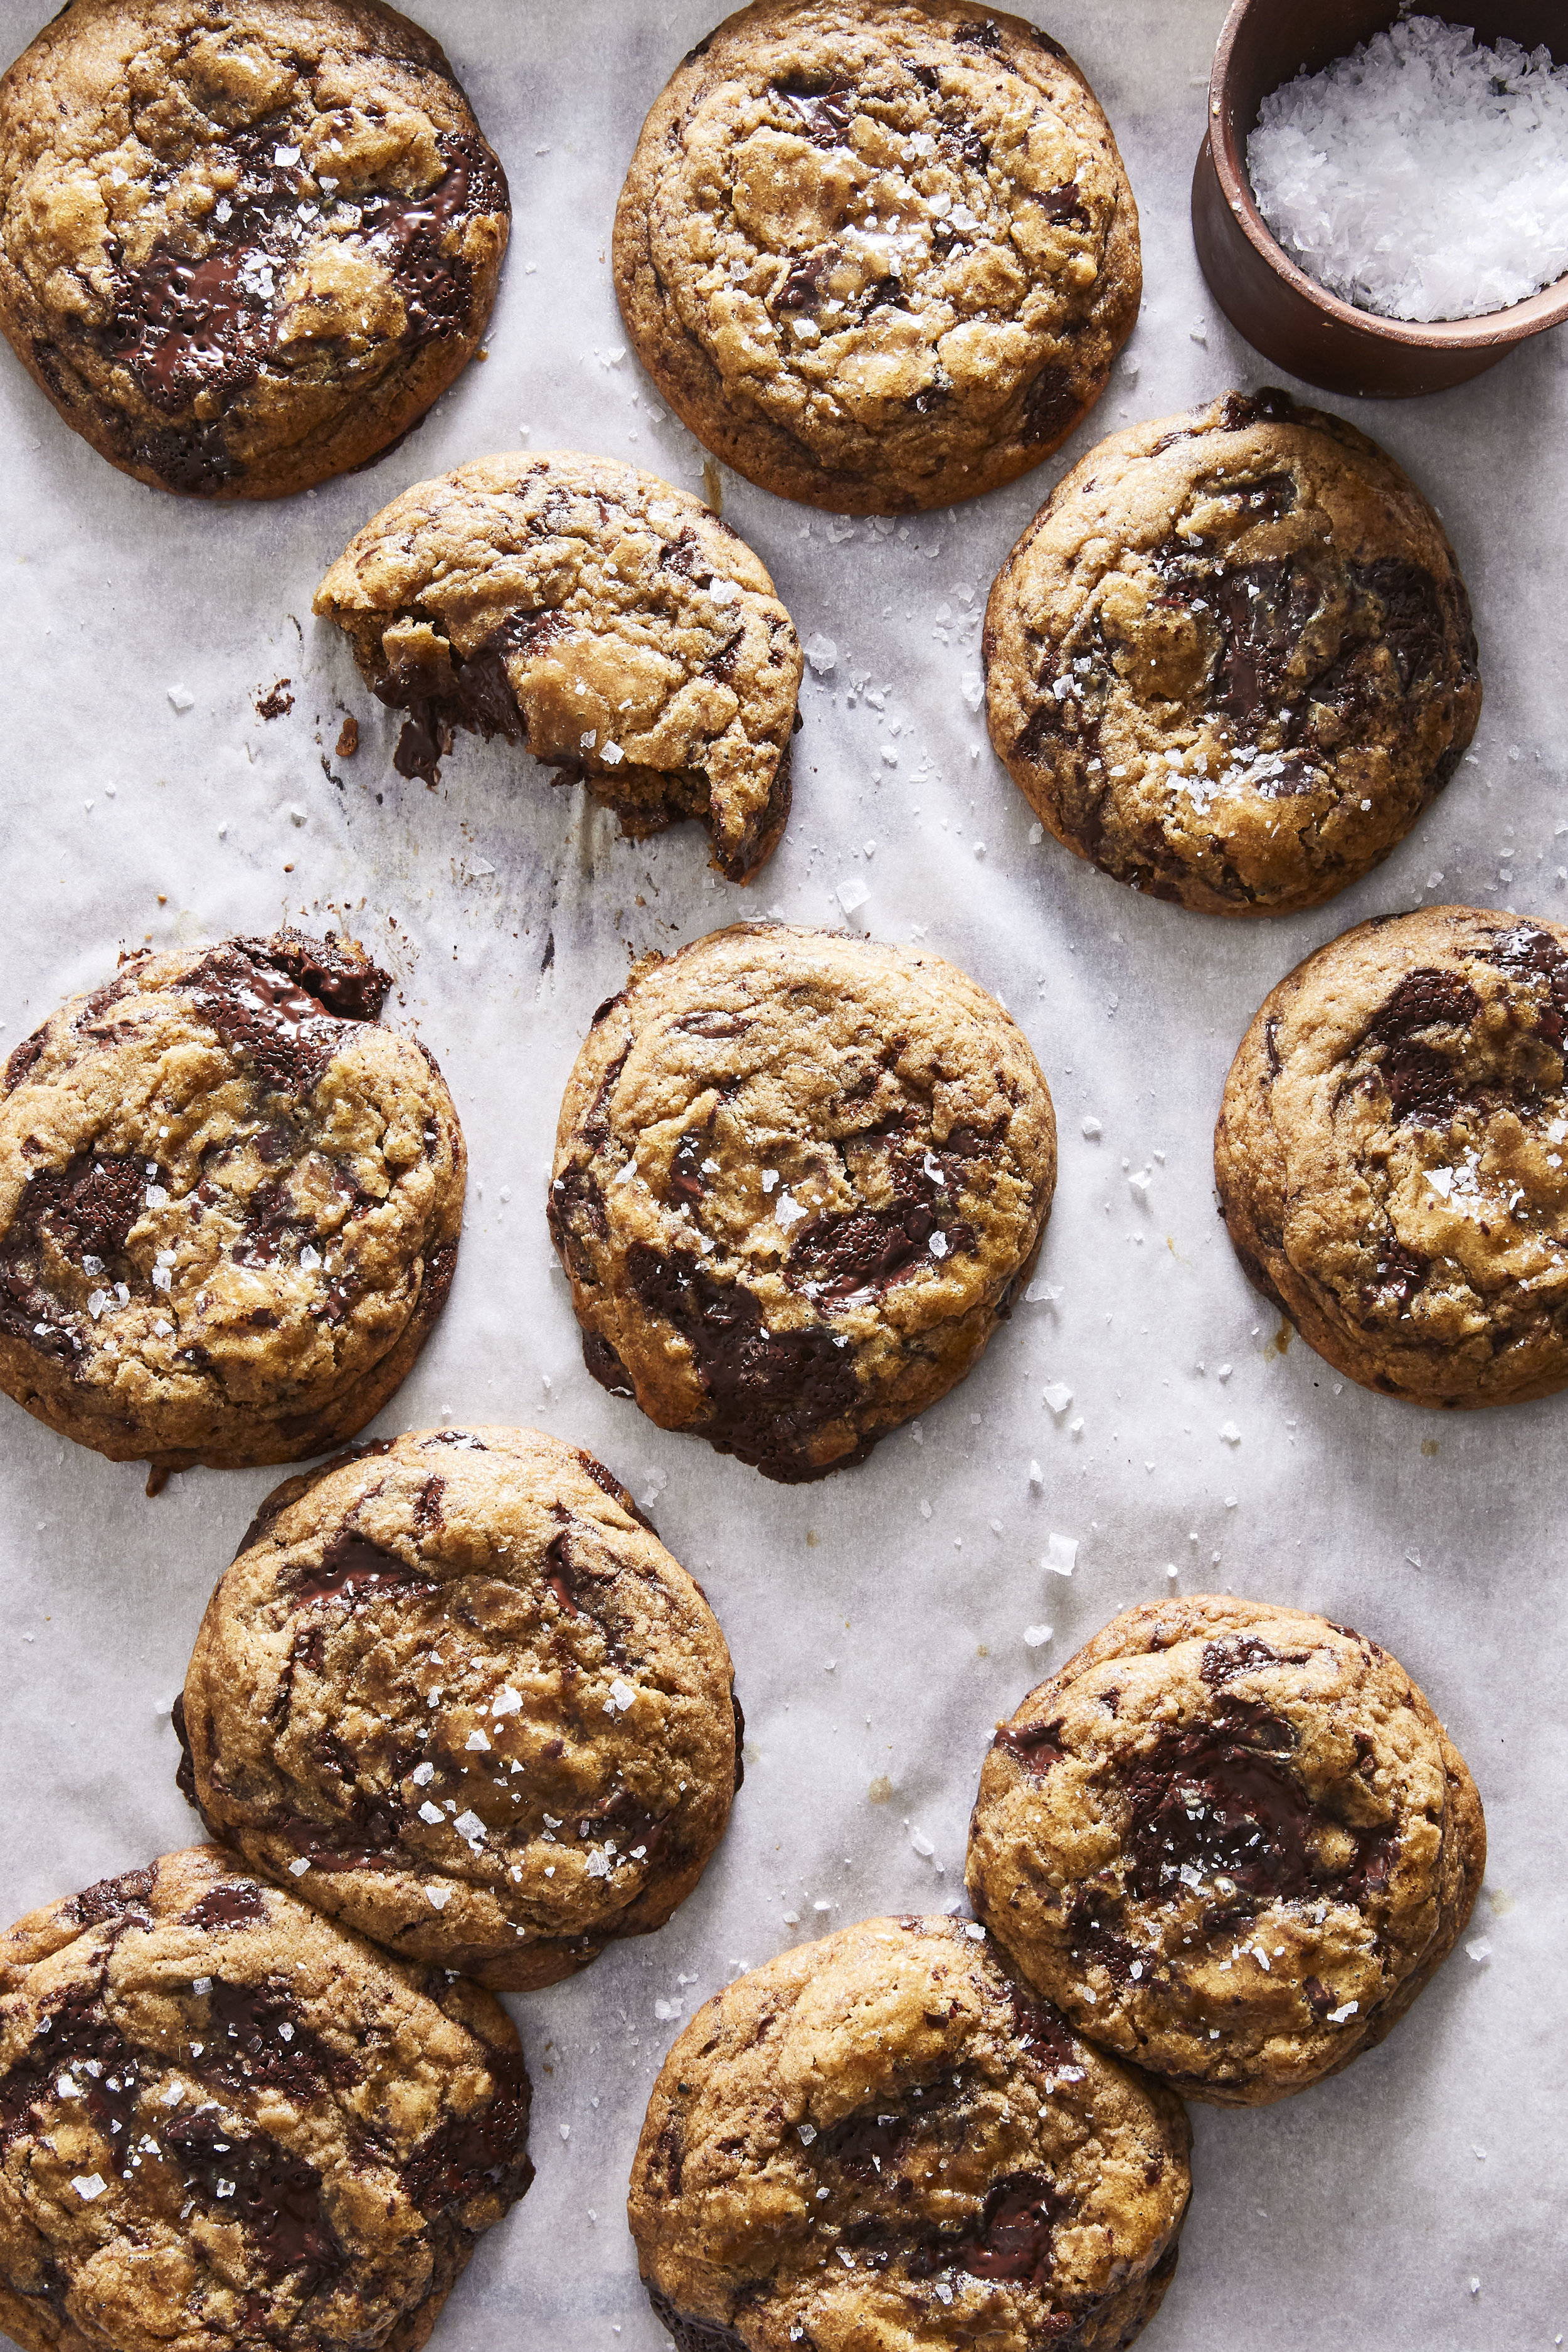 CHOCOLATE CHIP COOKIE FOR MODERN TIMES  (CODE: easy, healthyish, insanely delicious) from Sarah Copeland's Every Day is Saturday #everydayissaturdaycookbook #chocolatechipcookieformoderntimes #sarahcopeland #easybaking #chocolatechipcookies